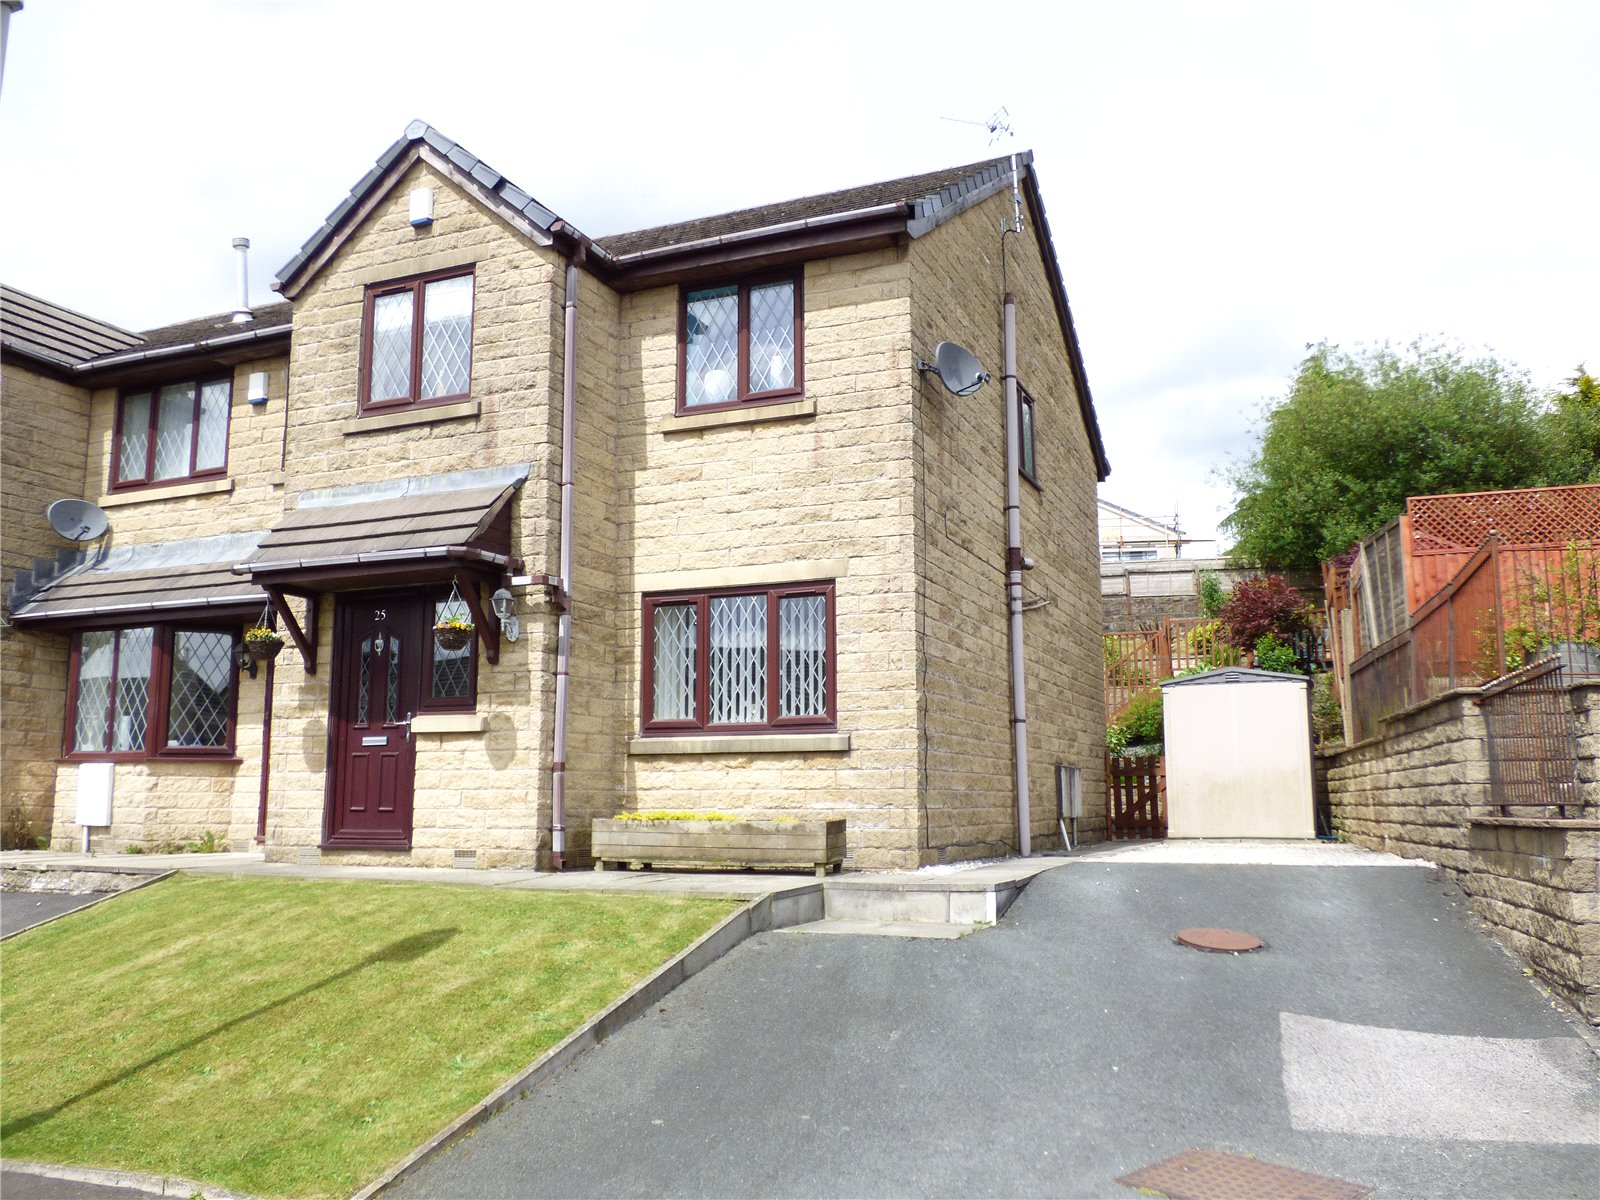 3 Bedrooms Semi Detached House for sale in Peel Drive, Bacup, Lancashire, OL13